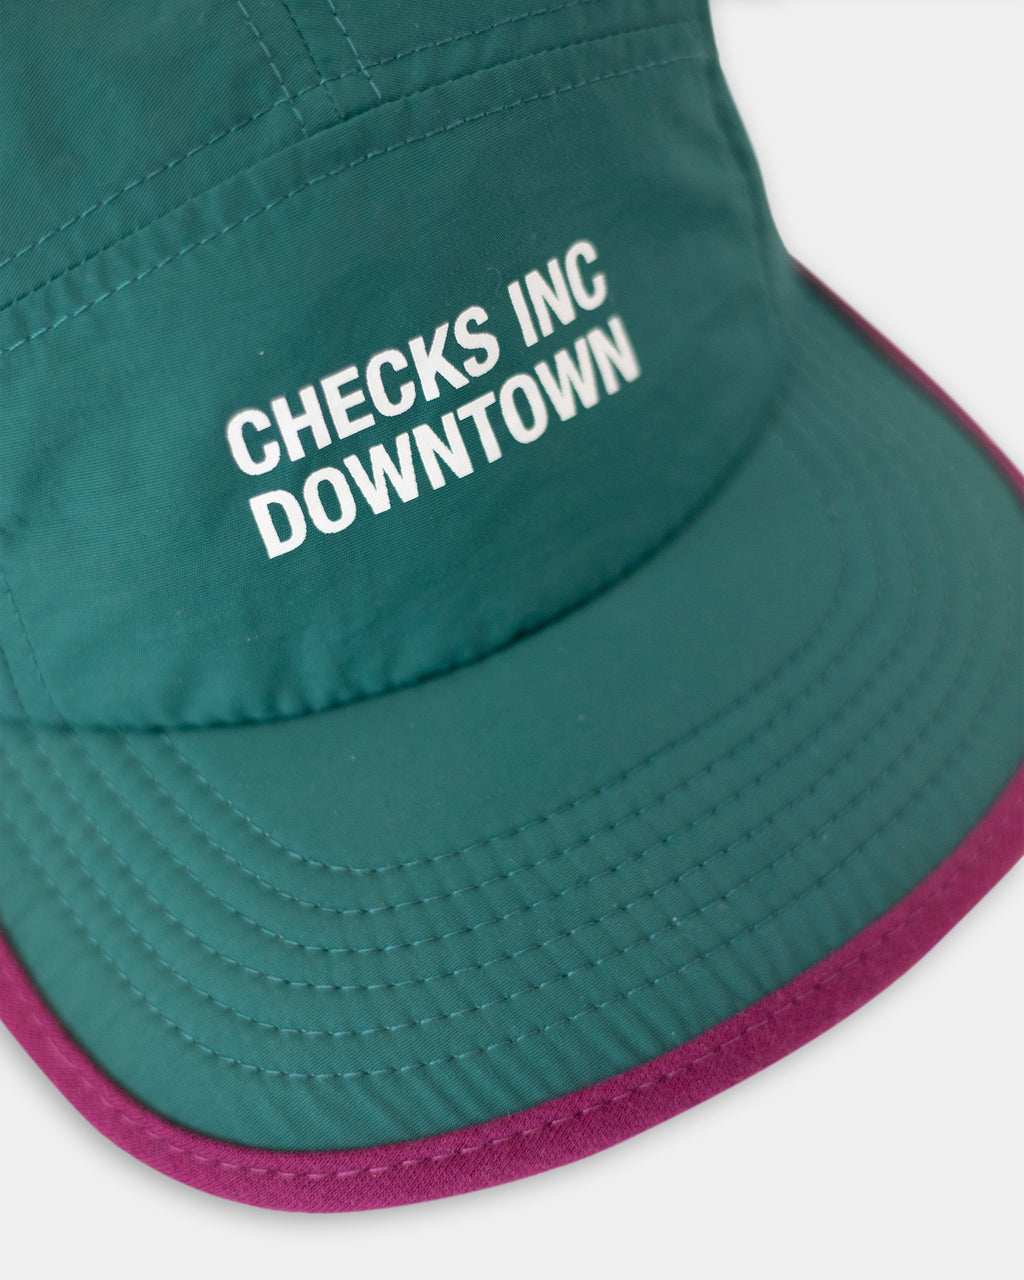 Nylon Running Cap Teal | CHECKS DOWNTOWN